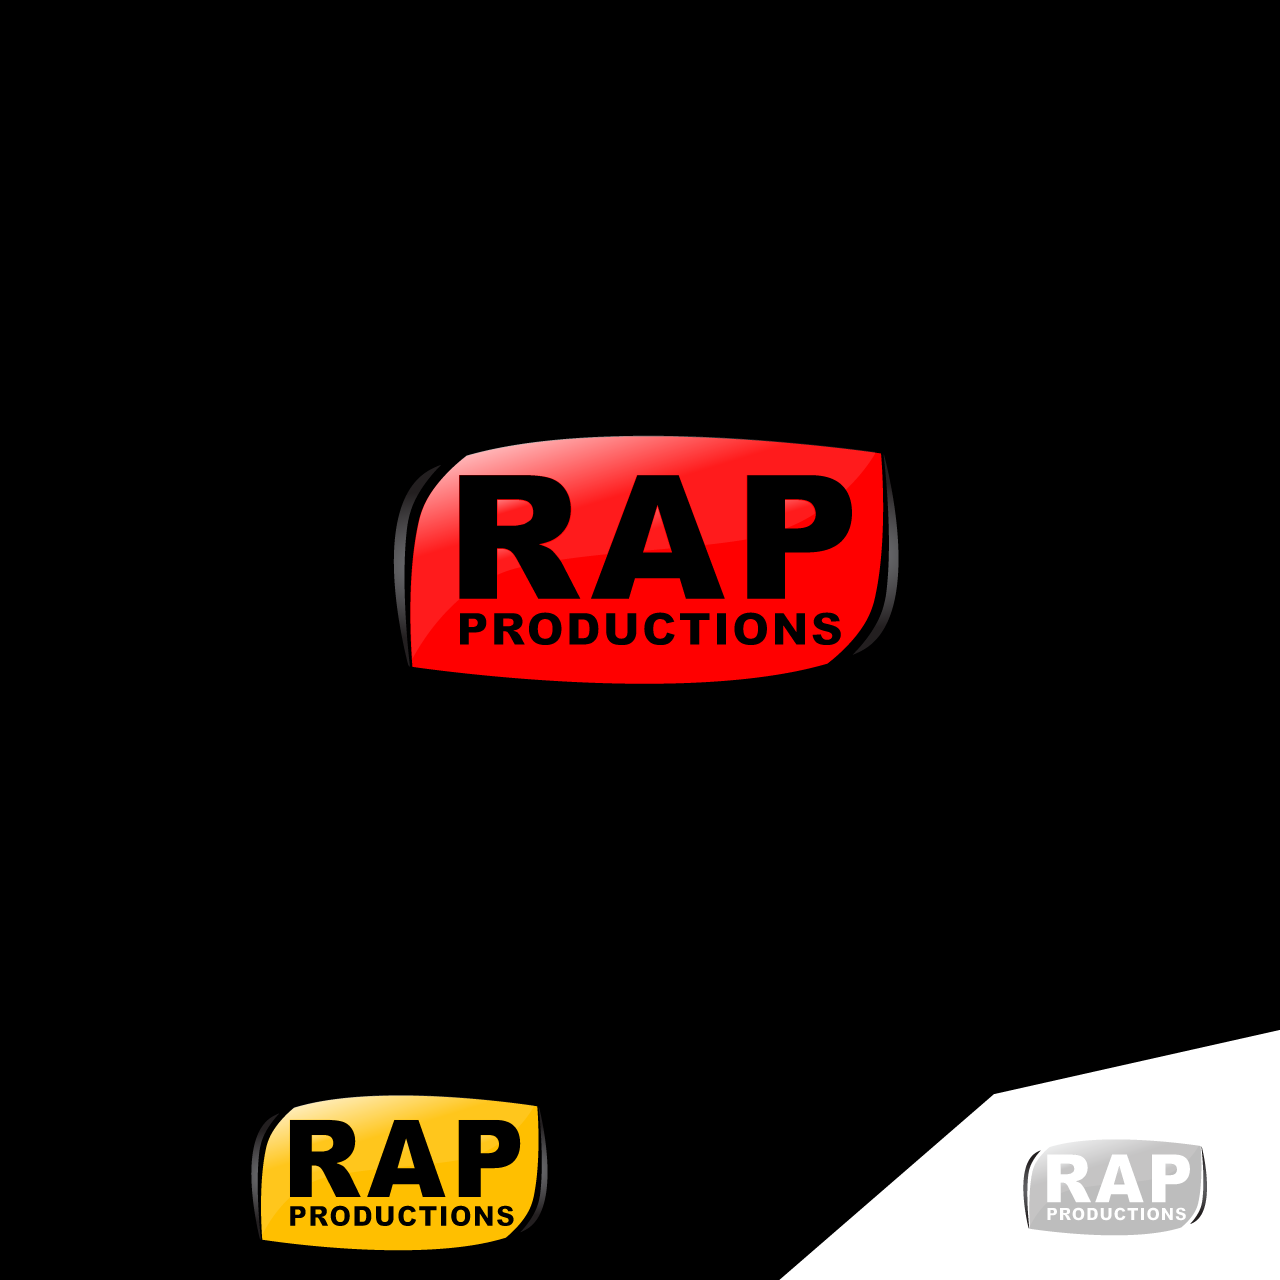 Logo Design by umxca - Entry No. 75 in the Logo Design Contest R.A.P Productions.